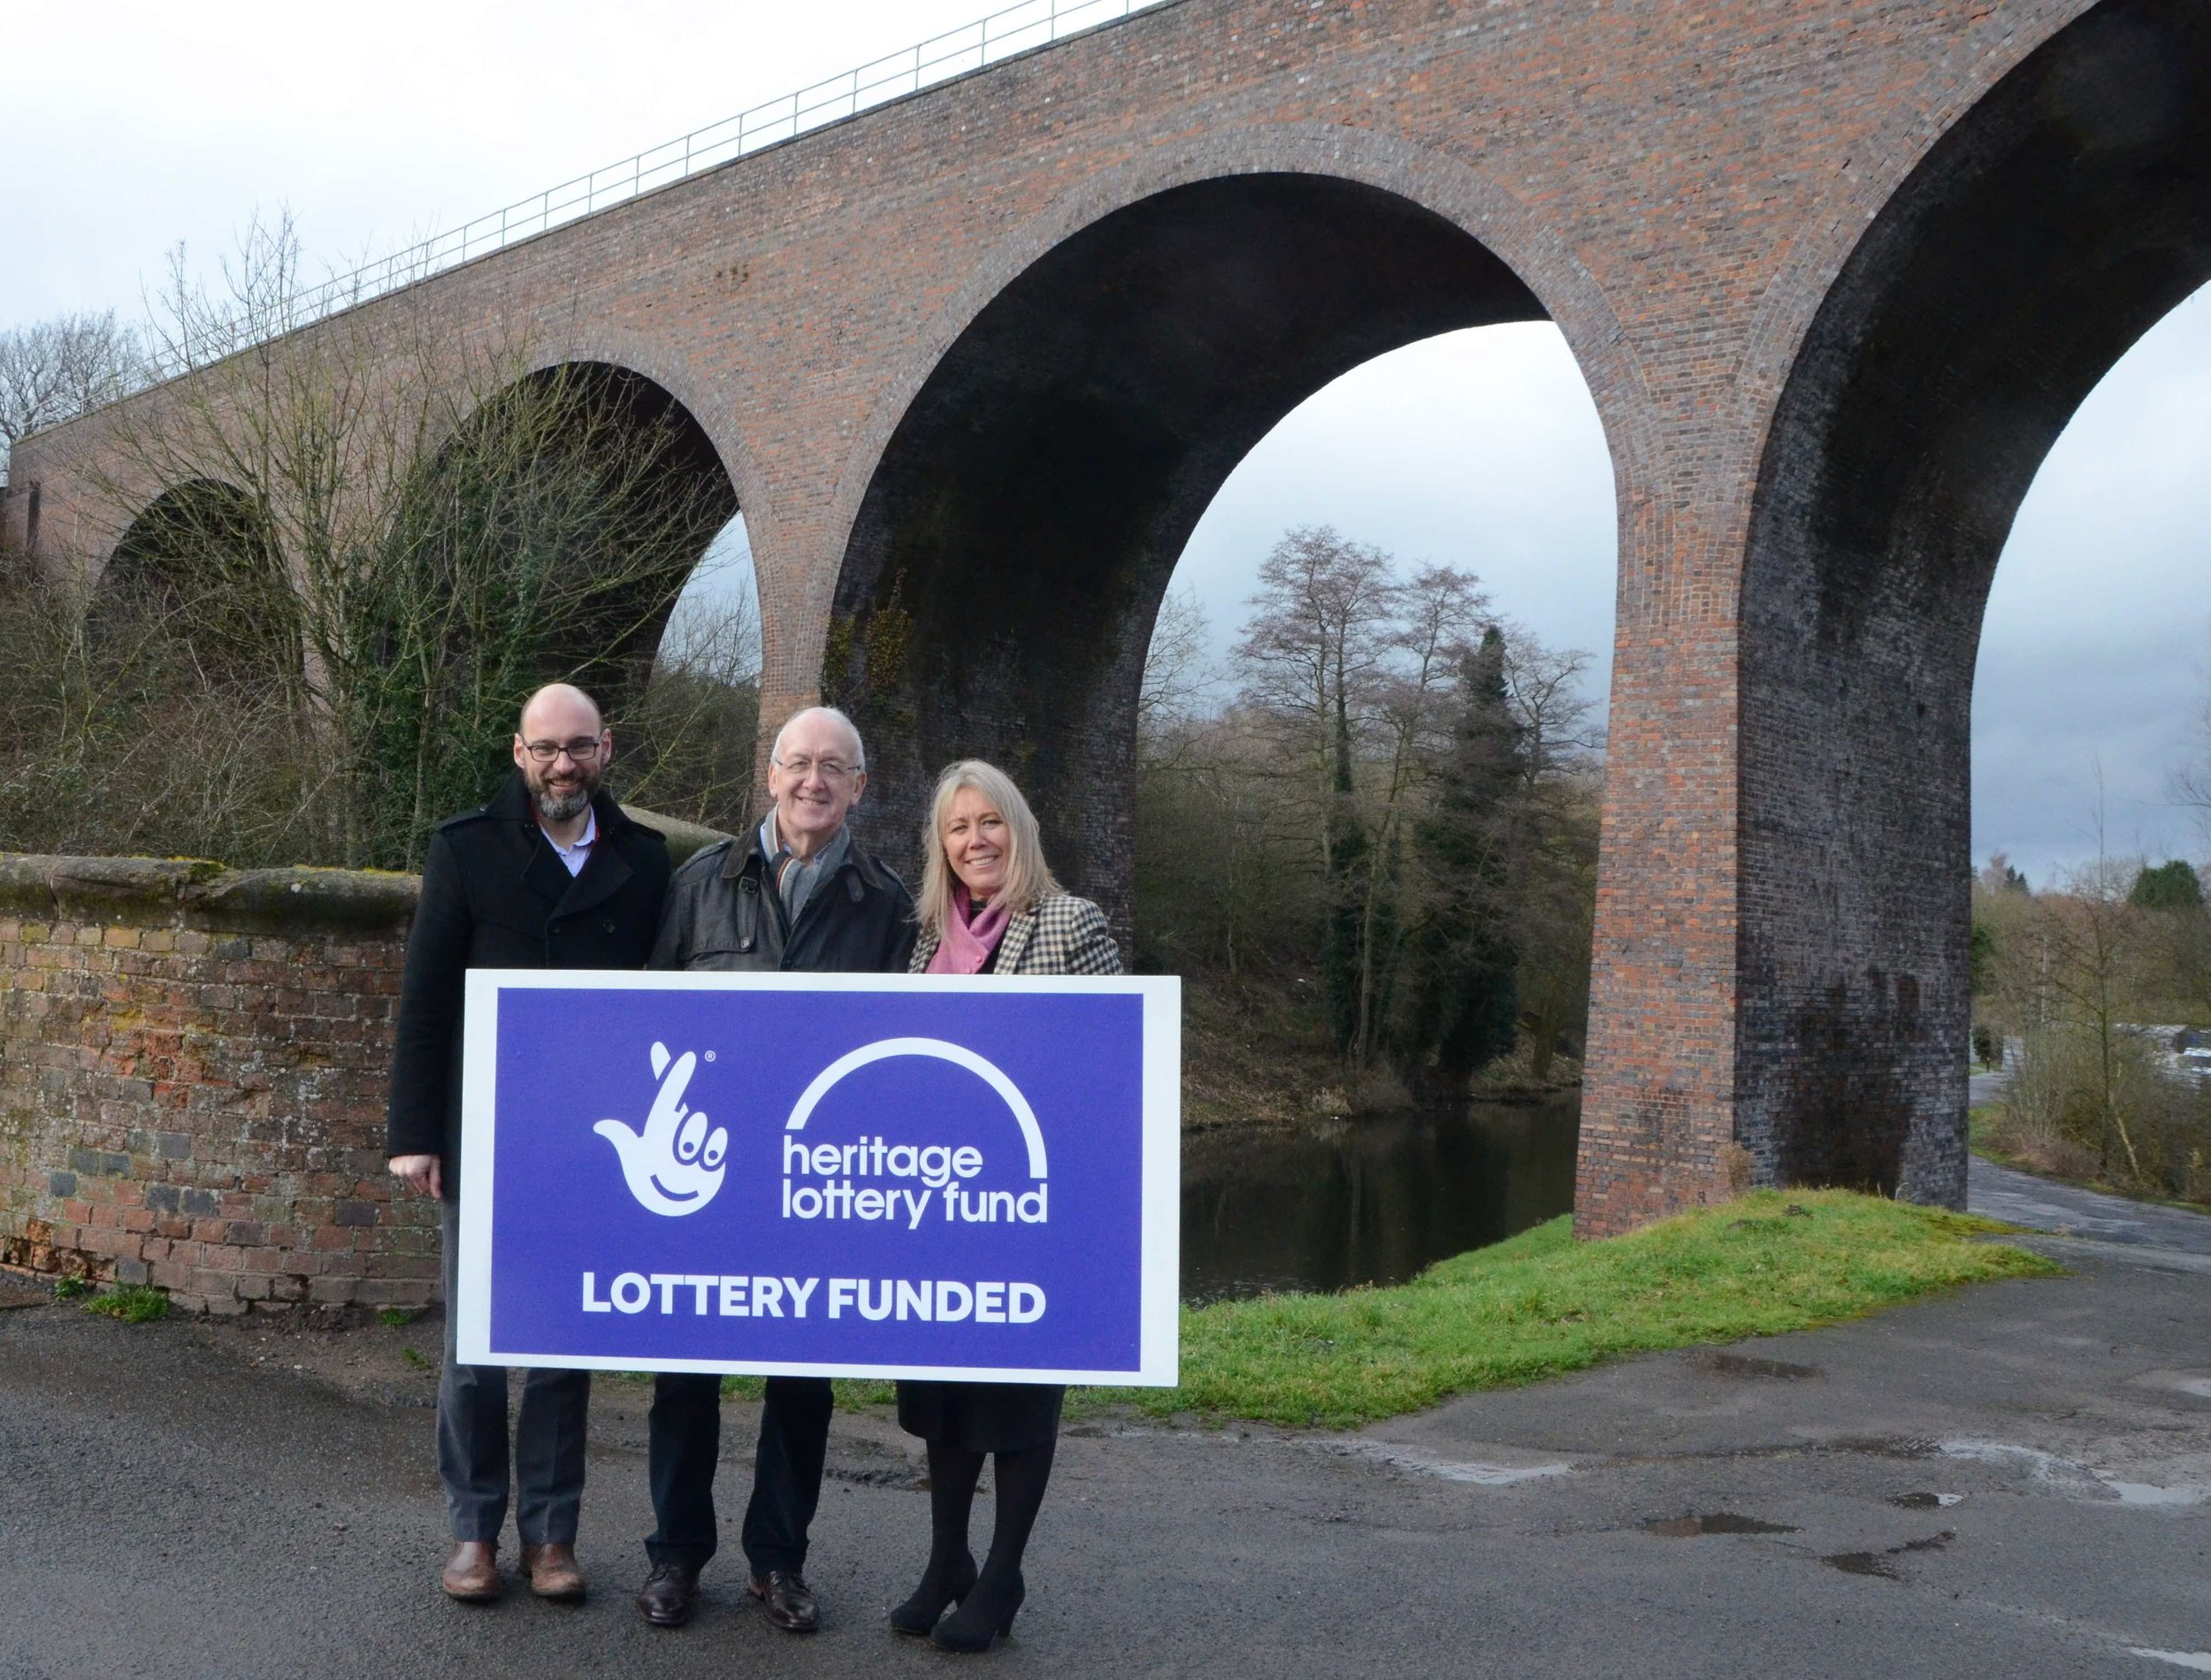 Nick Ralls, Nick Paul and Shelagh Paterson of the Severn Valley Railway at Falling Sands Viaduct. SVR